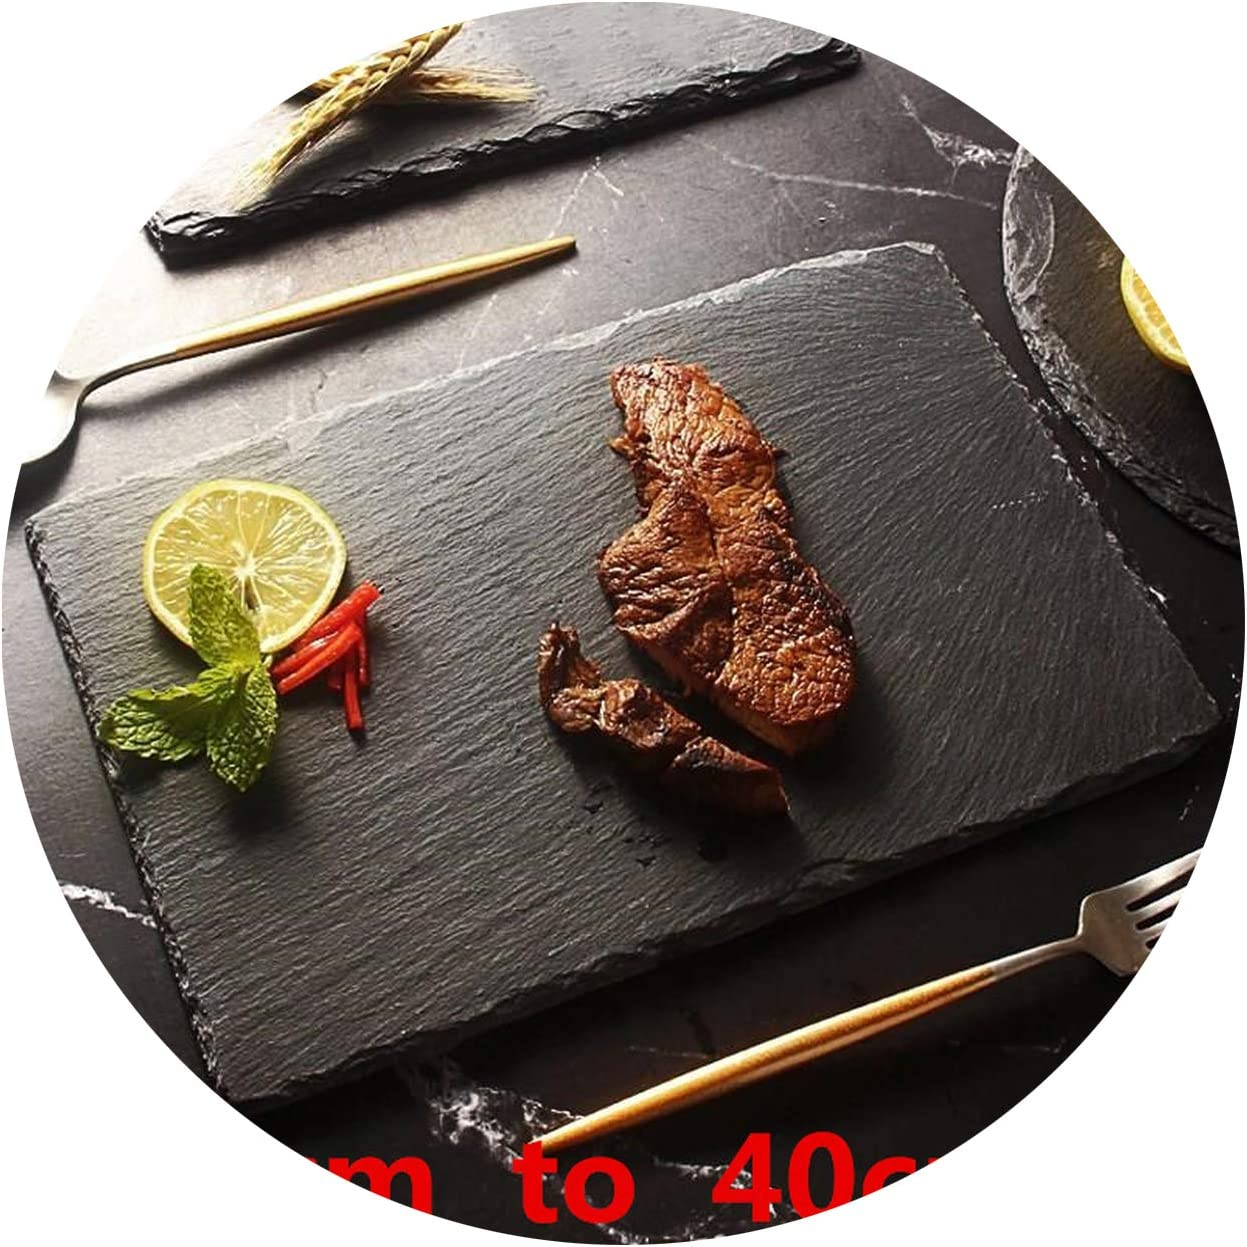 Natural Black Western Slate stone Dishes Solid Square Sushi Steak Barbecue BBQ Plate Cheese Pizza Dessert cake Fruit dish Tray,45x25cm